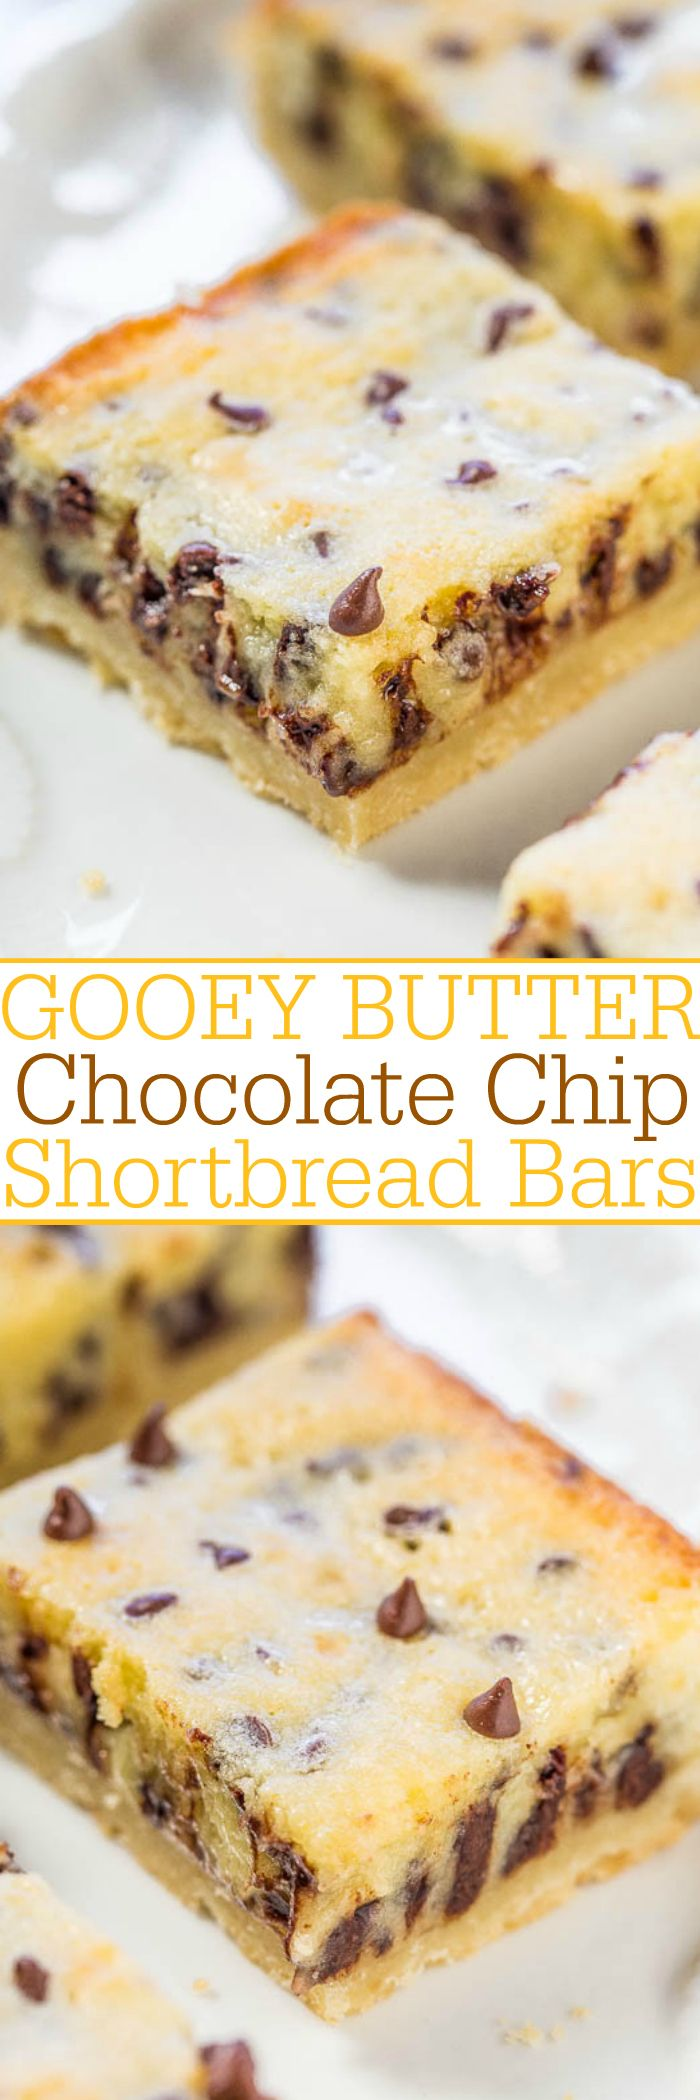 1000+ ideas about Chocolate Chips on Pinterest ...